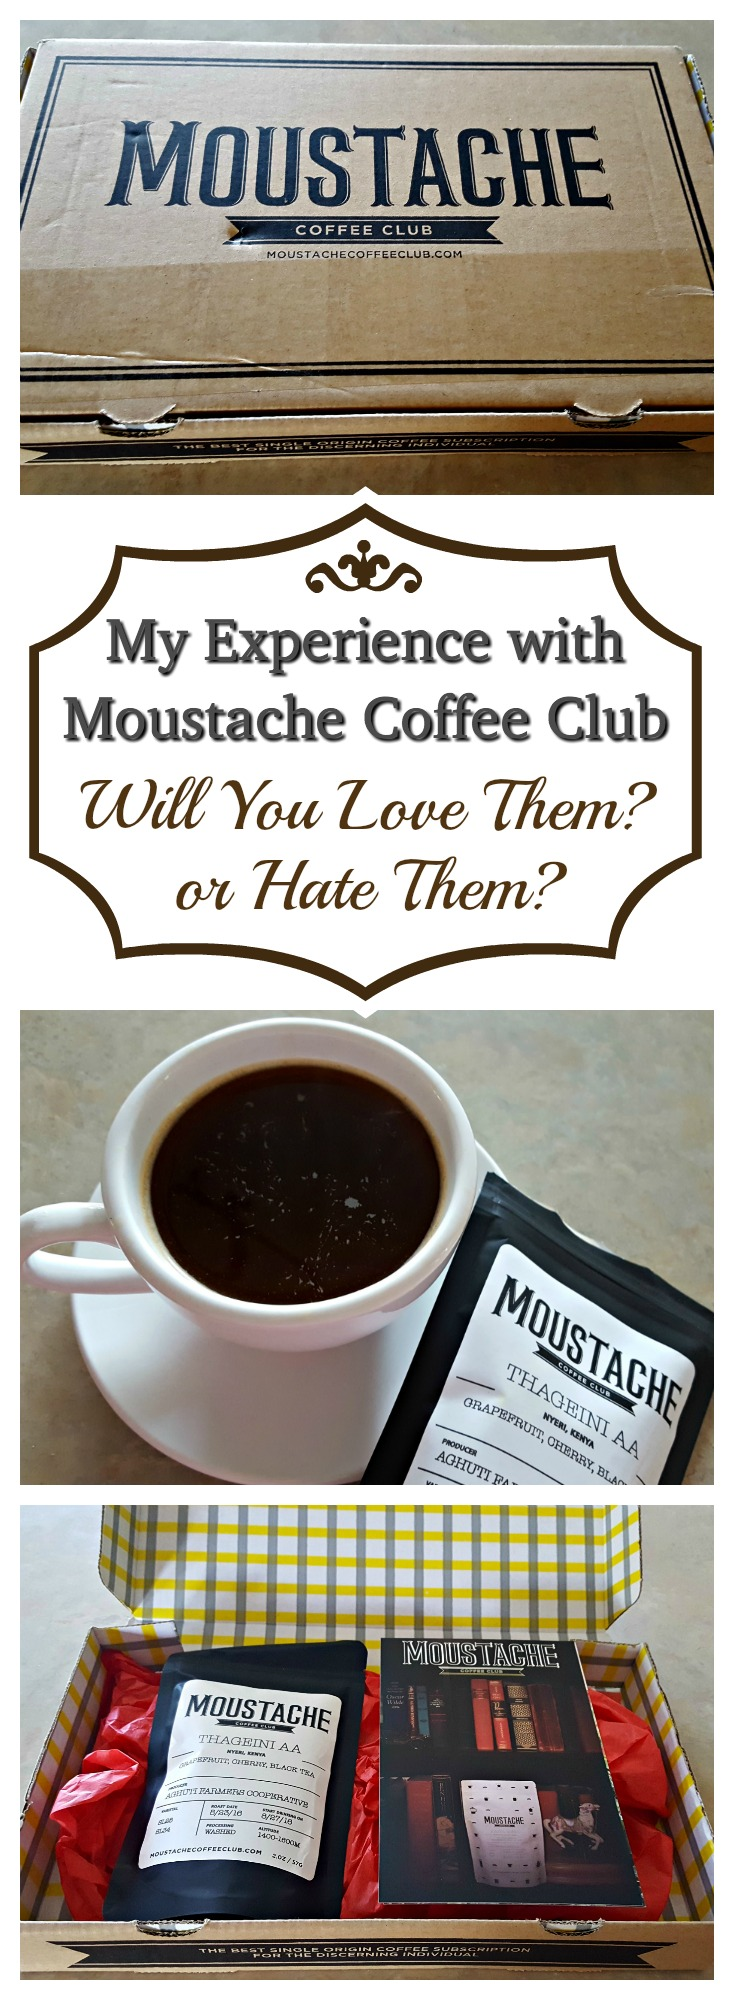 We Tried Moustache Coffee - Find out if we Loved it or Hated it!